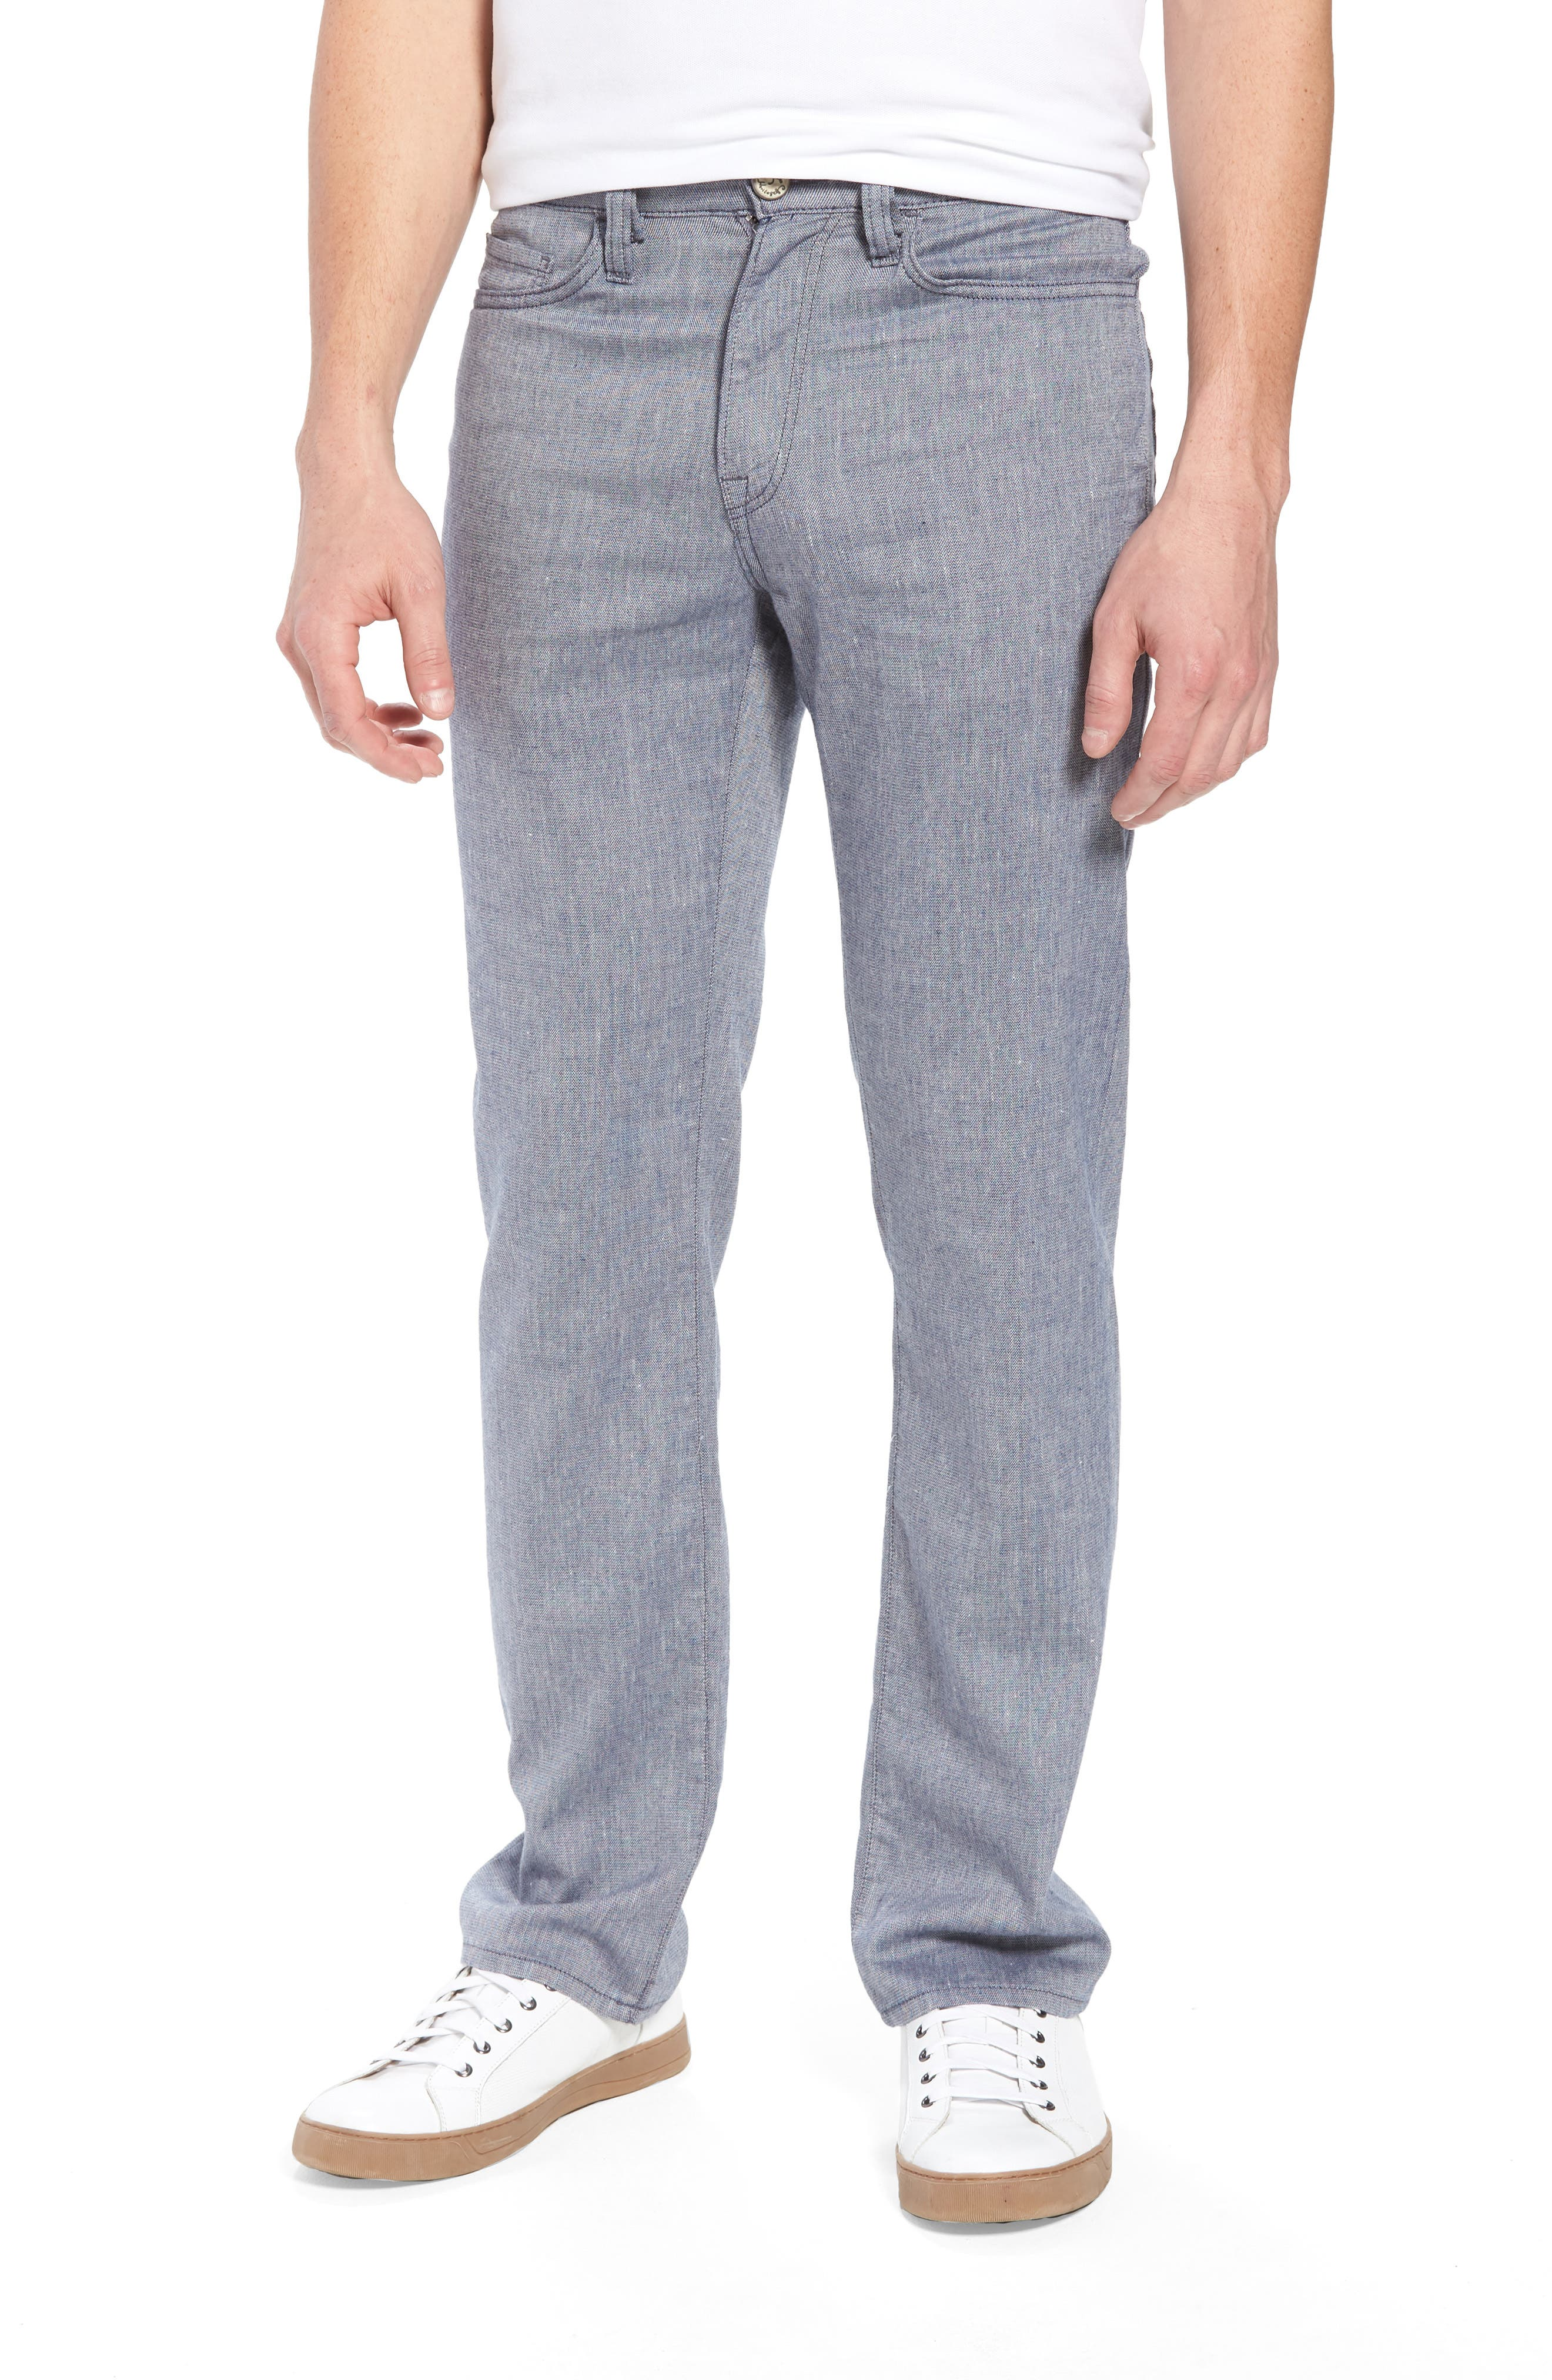 Charisma Relaxed Fit Pants,                             Main thumbnail 1, color,                             Indigo Textured